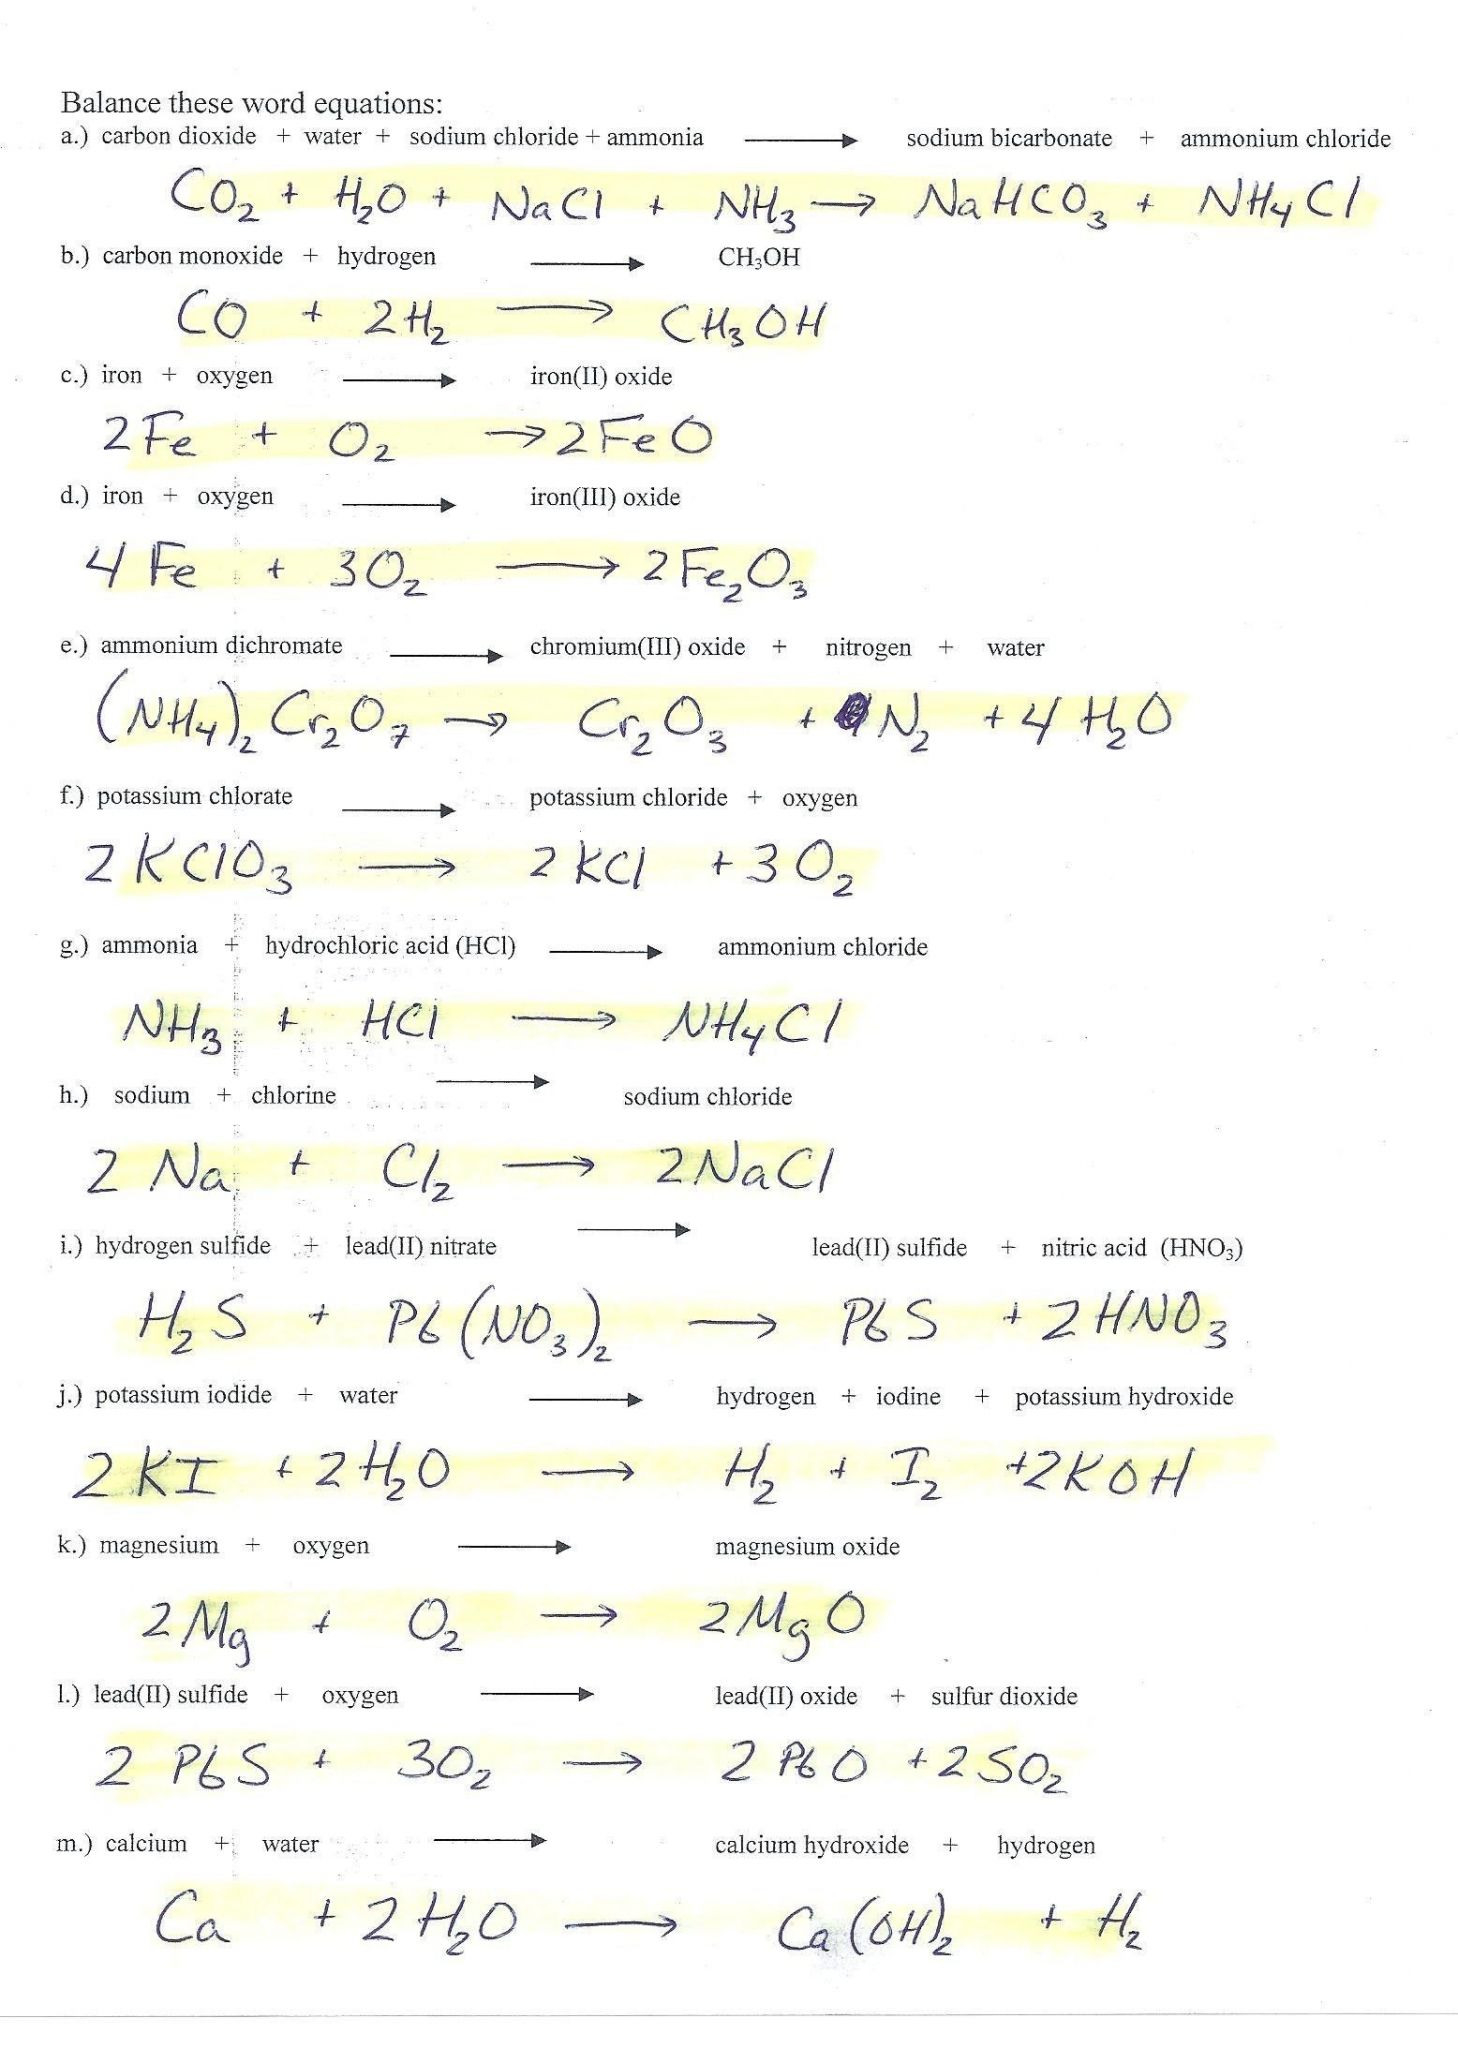 Physical Science If Worksheet Answers